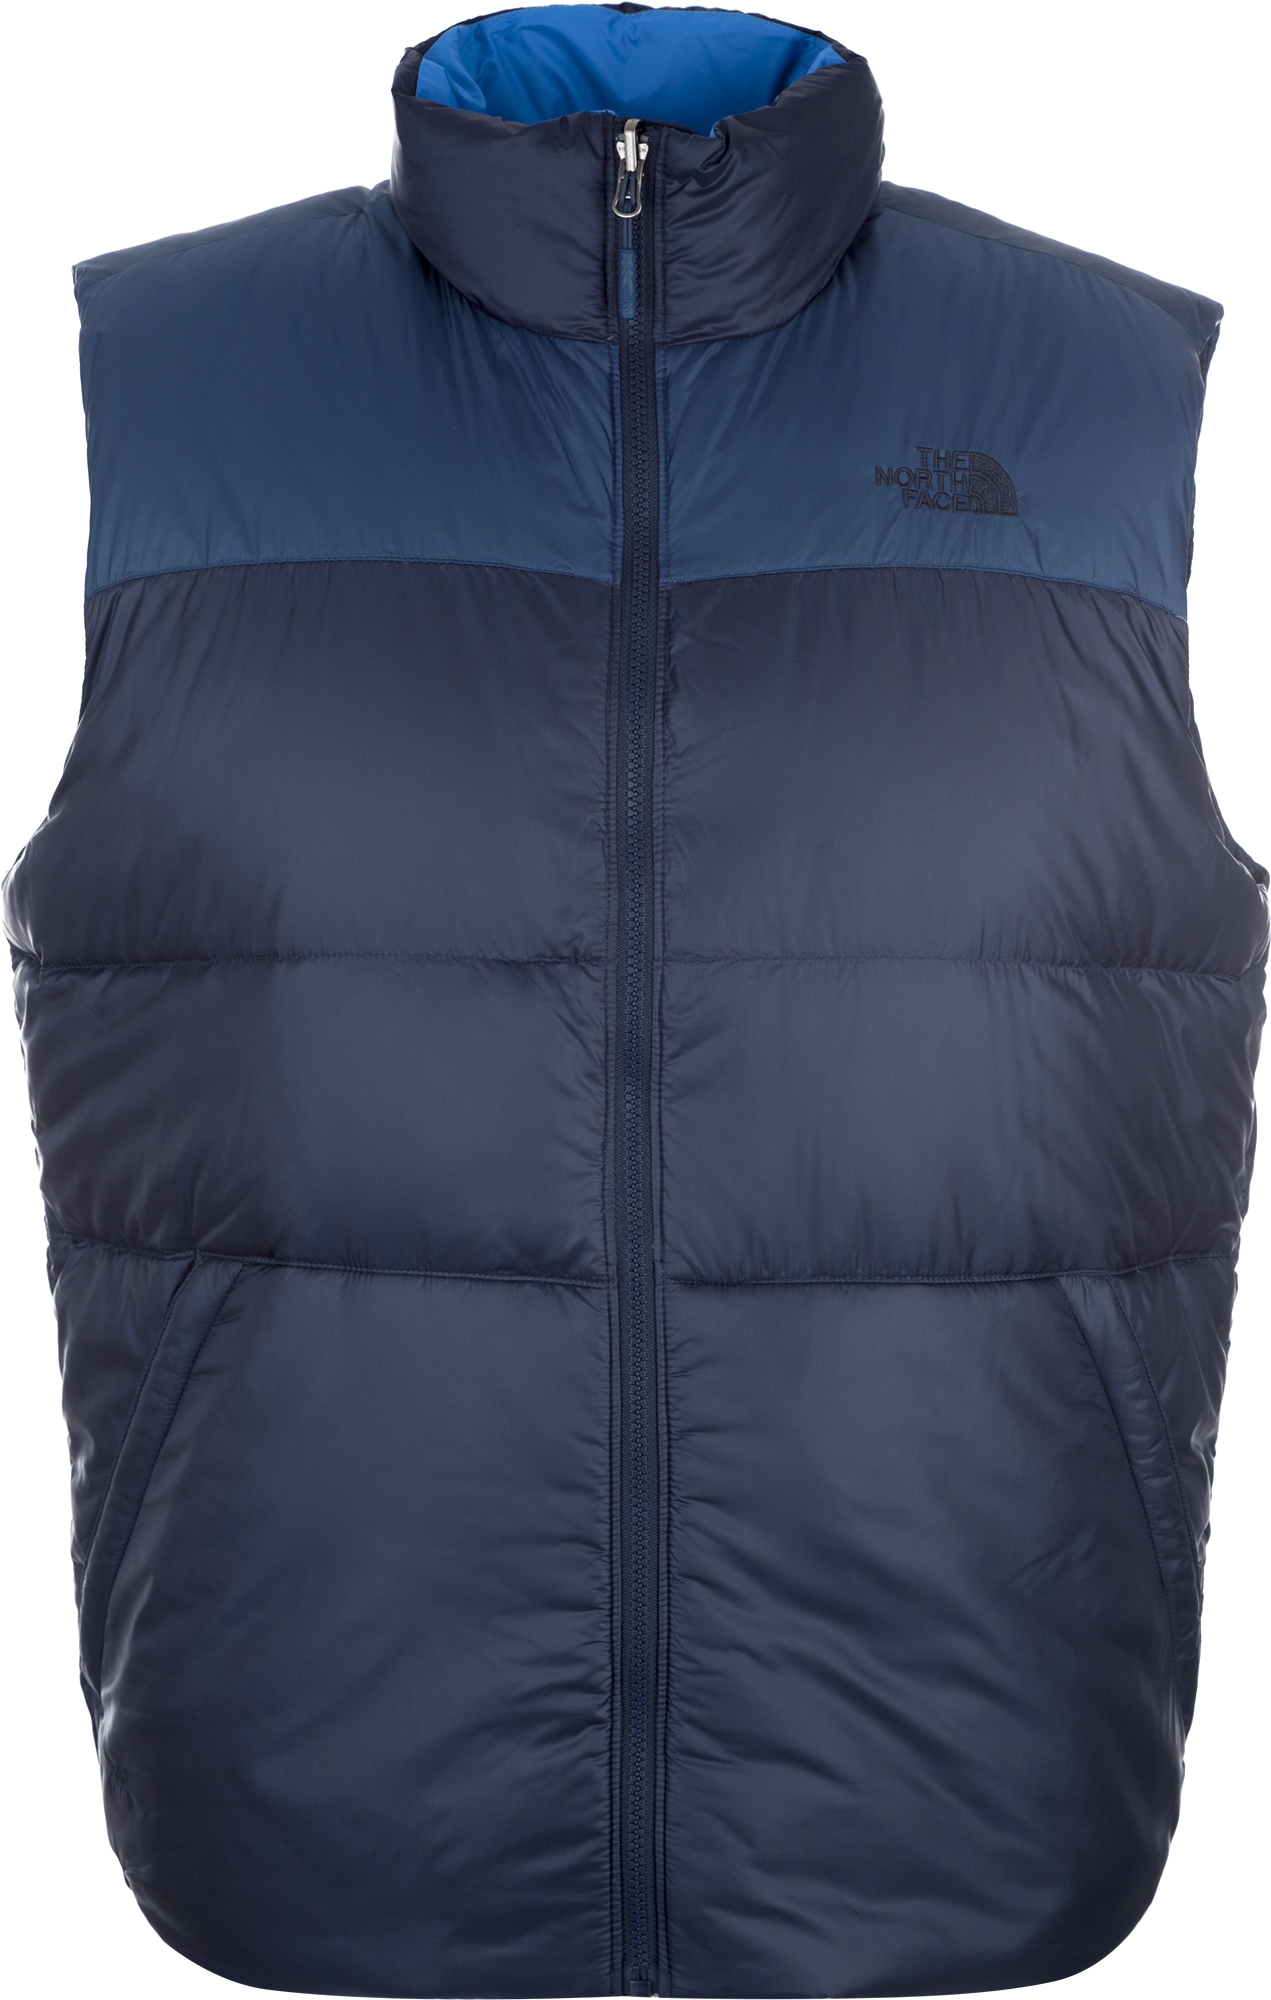 The North Face Жилет пуховой мужской The North Face Nuptse III Vest, размер 48 рюкзак the north face the north face th016buanvr0